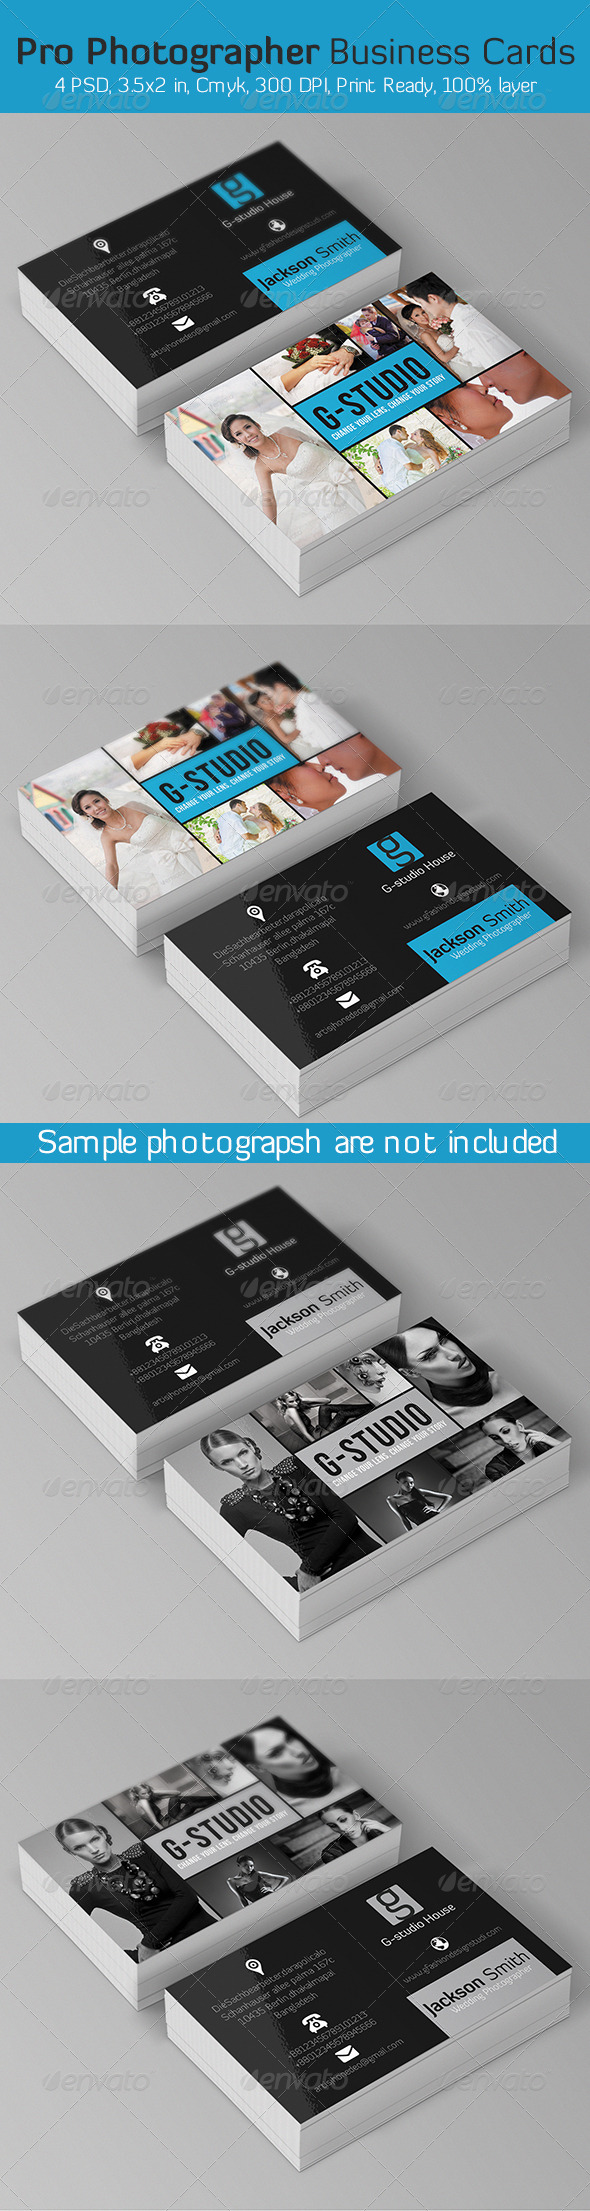 Pro Photographer Business Card - Business Cards Print Templates